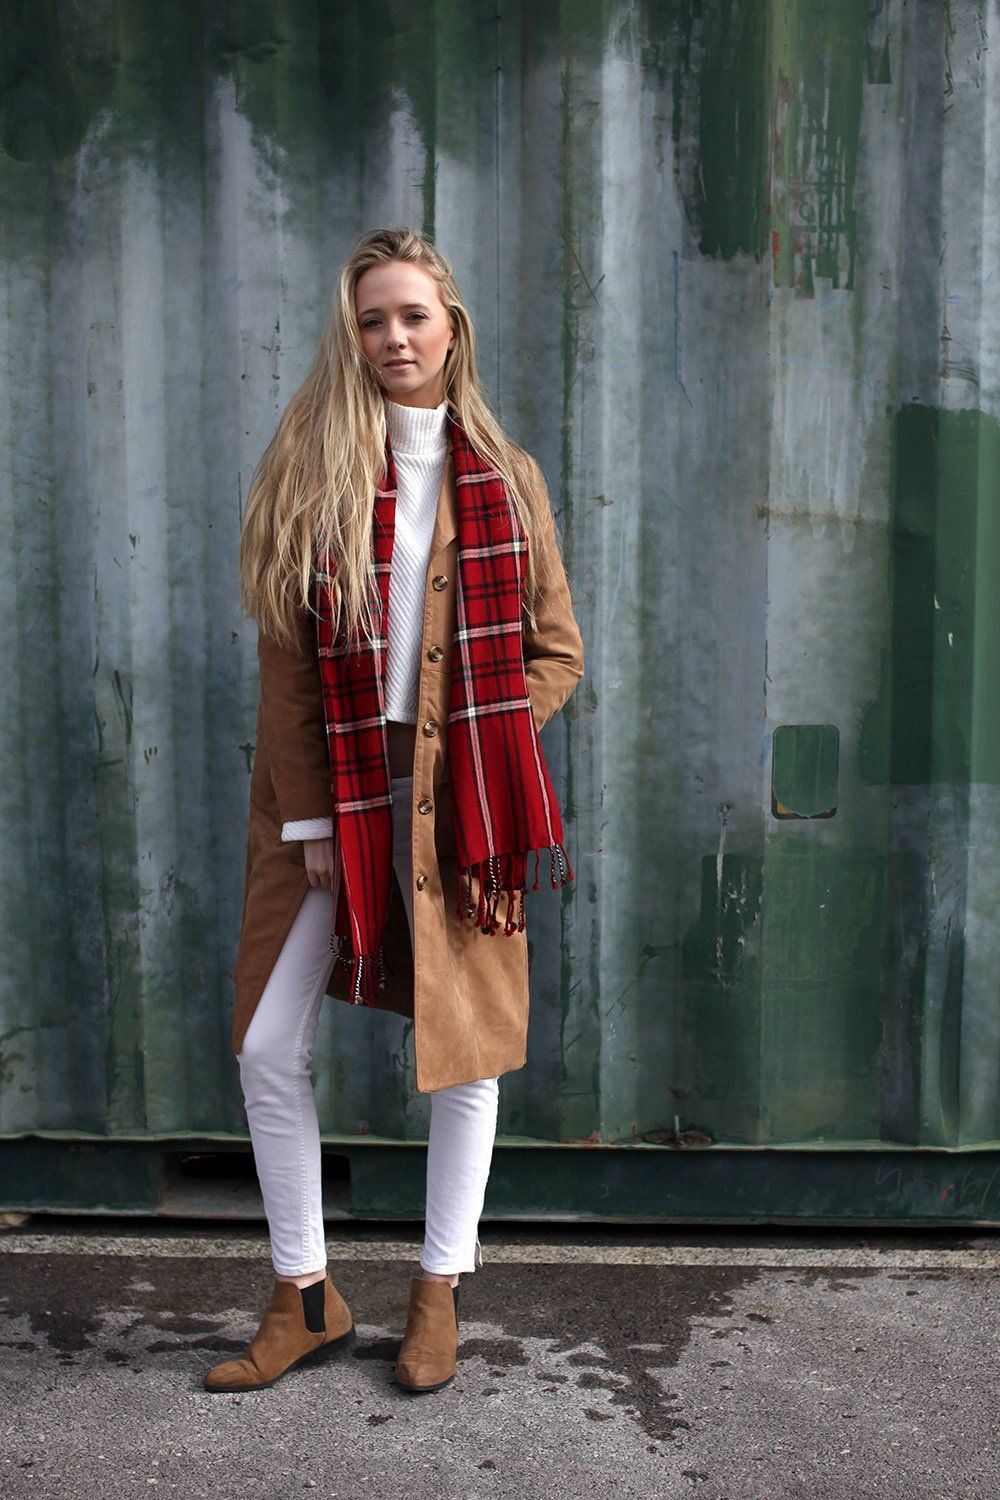 Women's Chic Red Check Plaid Wool Scarf Holiday Christmas Tassels Shawl at Amazon Women's Clothing store: Cold Weather Scarves